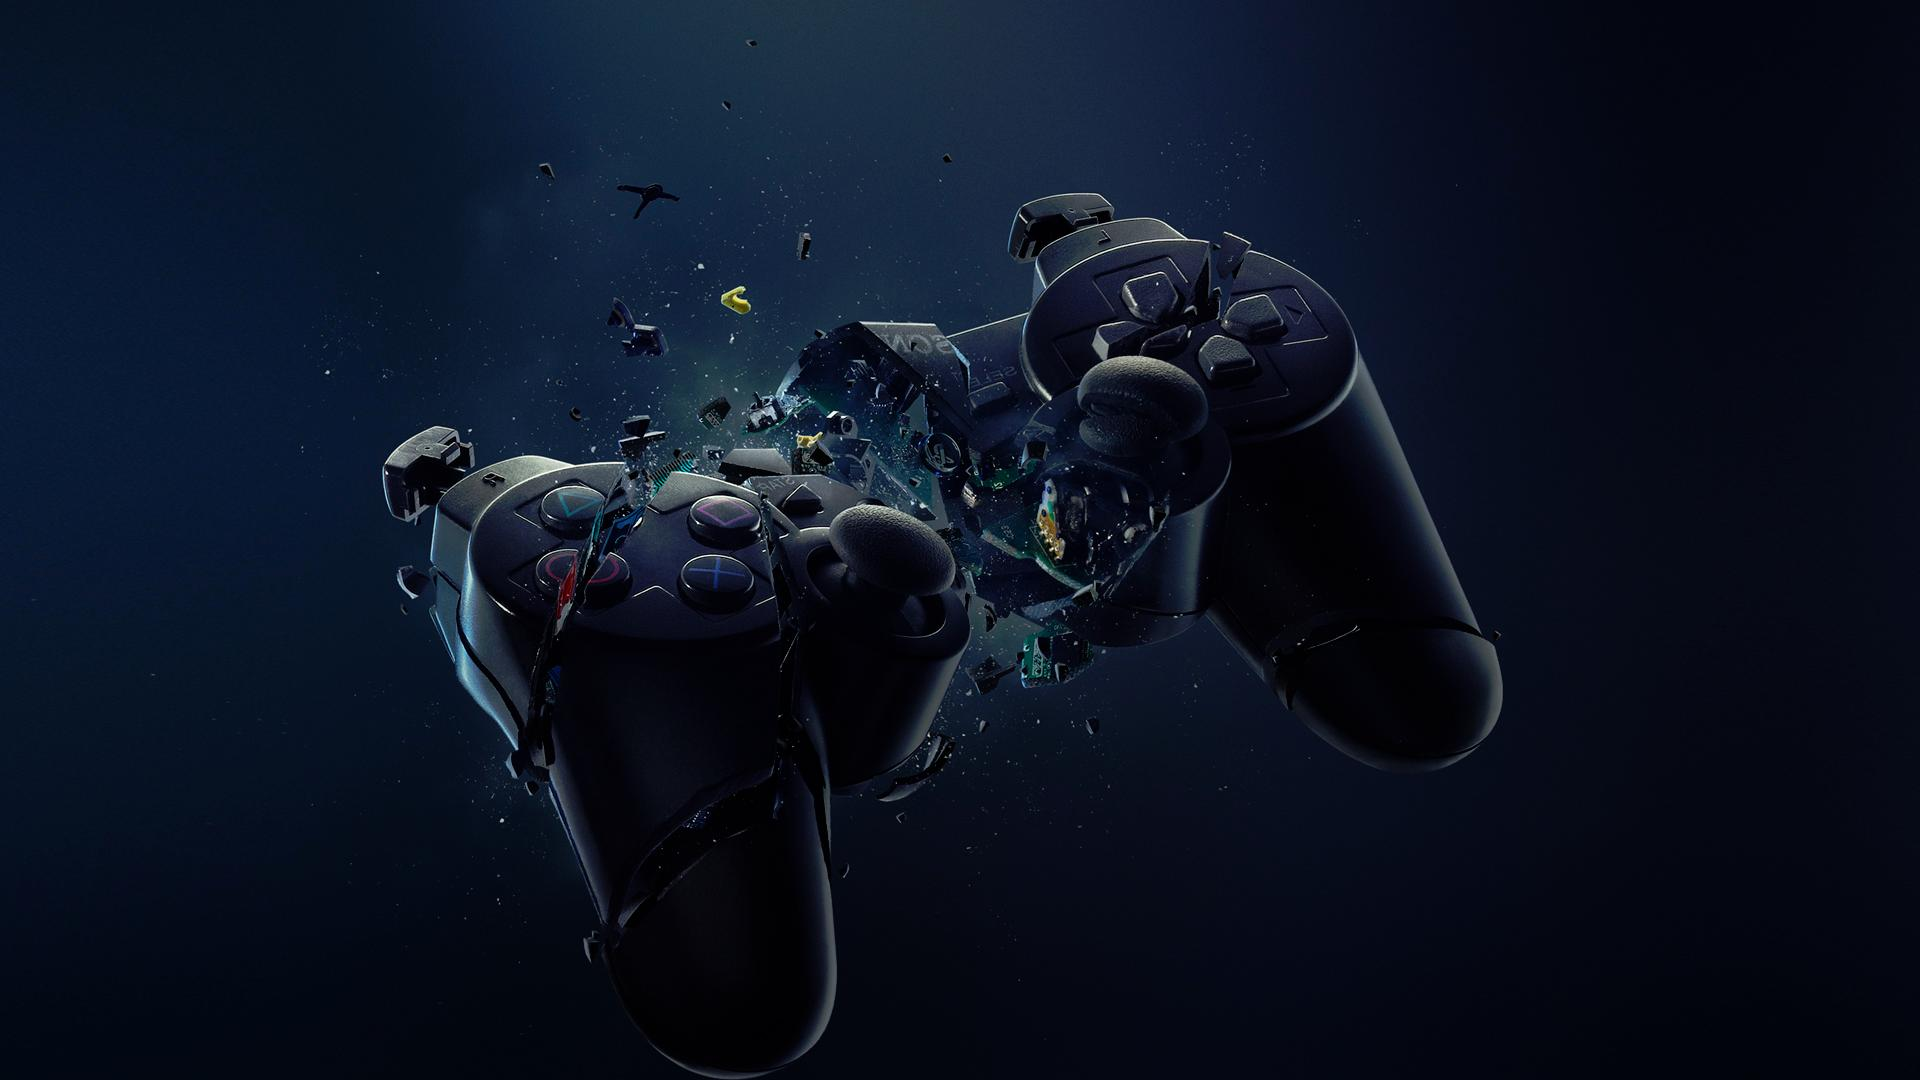 ps4 official wallpaper 02 - photo #13